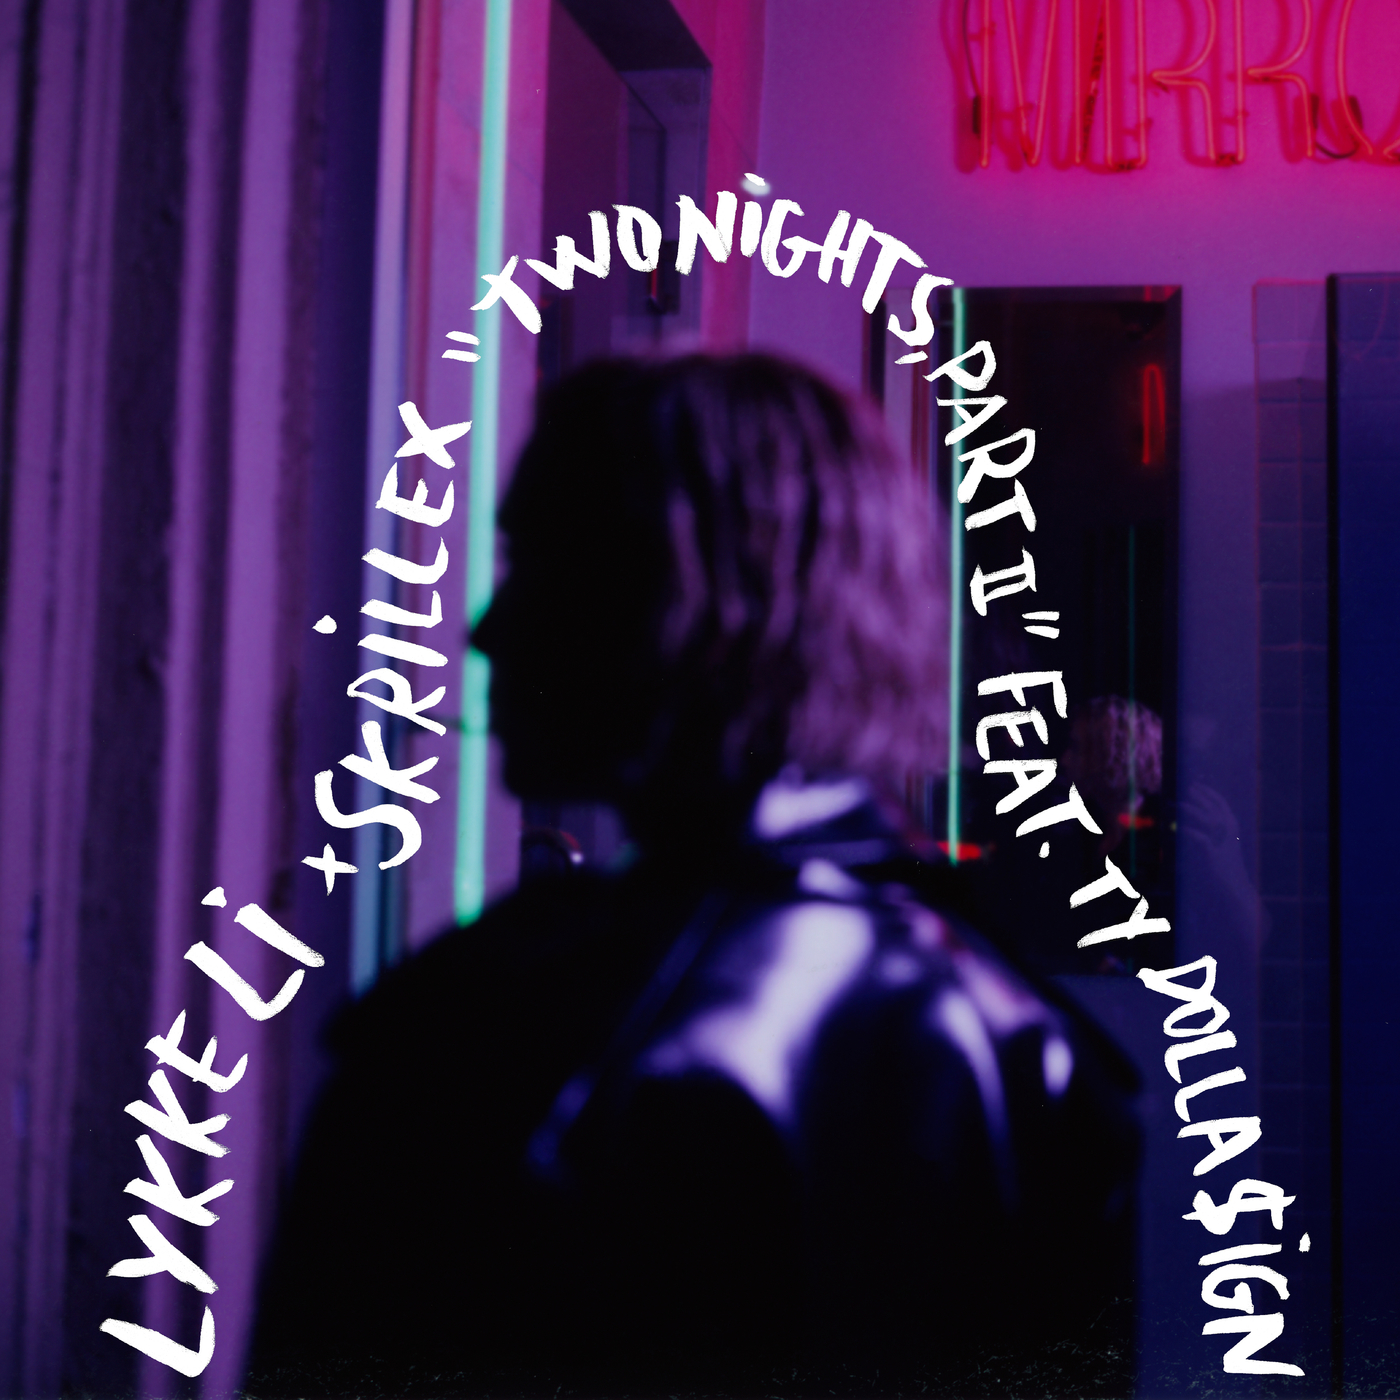 two nights part ii (Lykke Li x Skrillex x Ty Dolla $ign) - Lykke Li